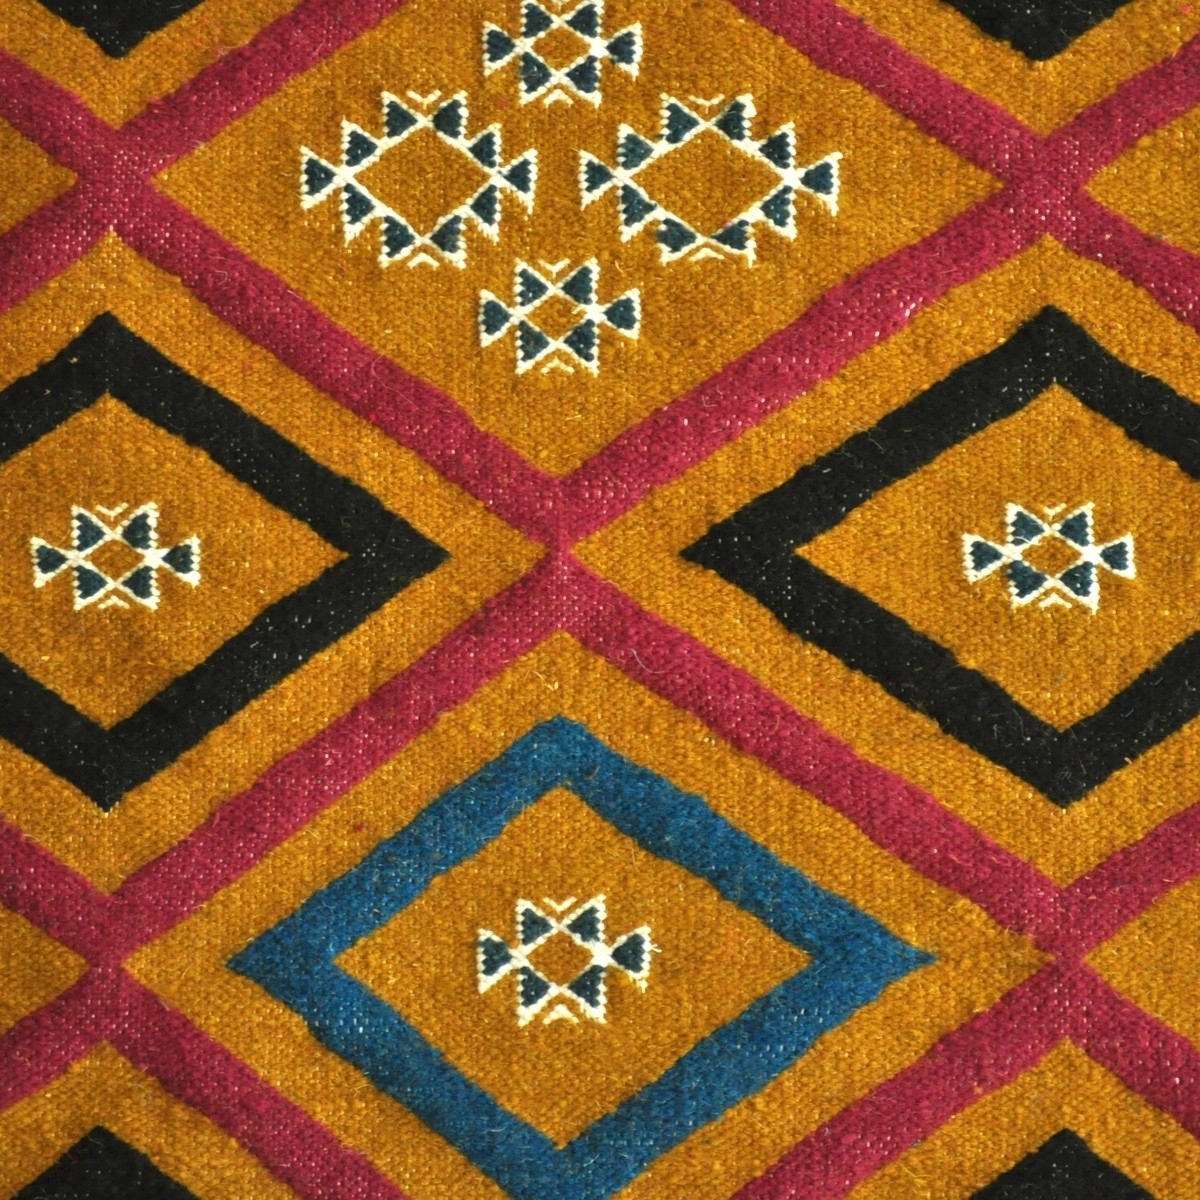 Berber carpet Rug Kilim long Ajim 65x215 Yellow (Handmade, Wool, Tunisia) Tunisian Rug Kilim style Moroccan rug. Rectangular car